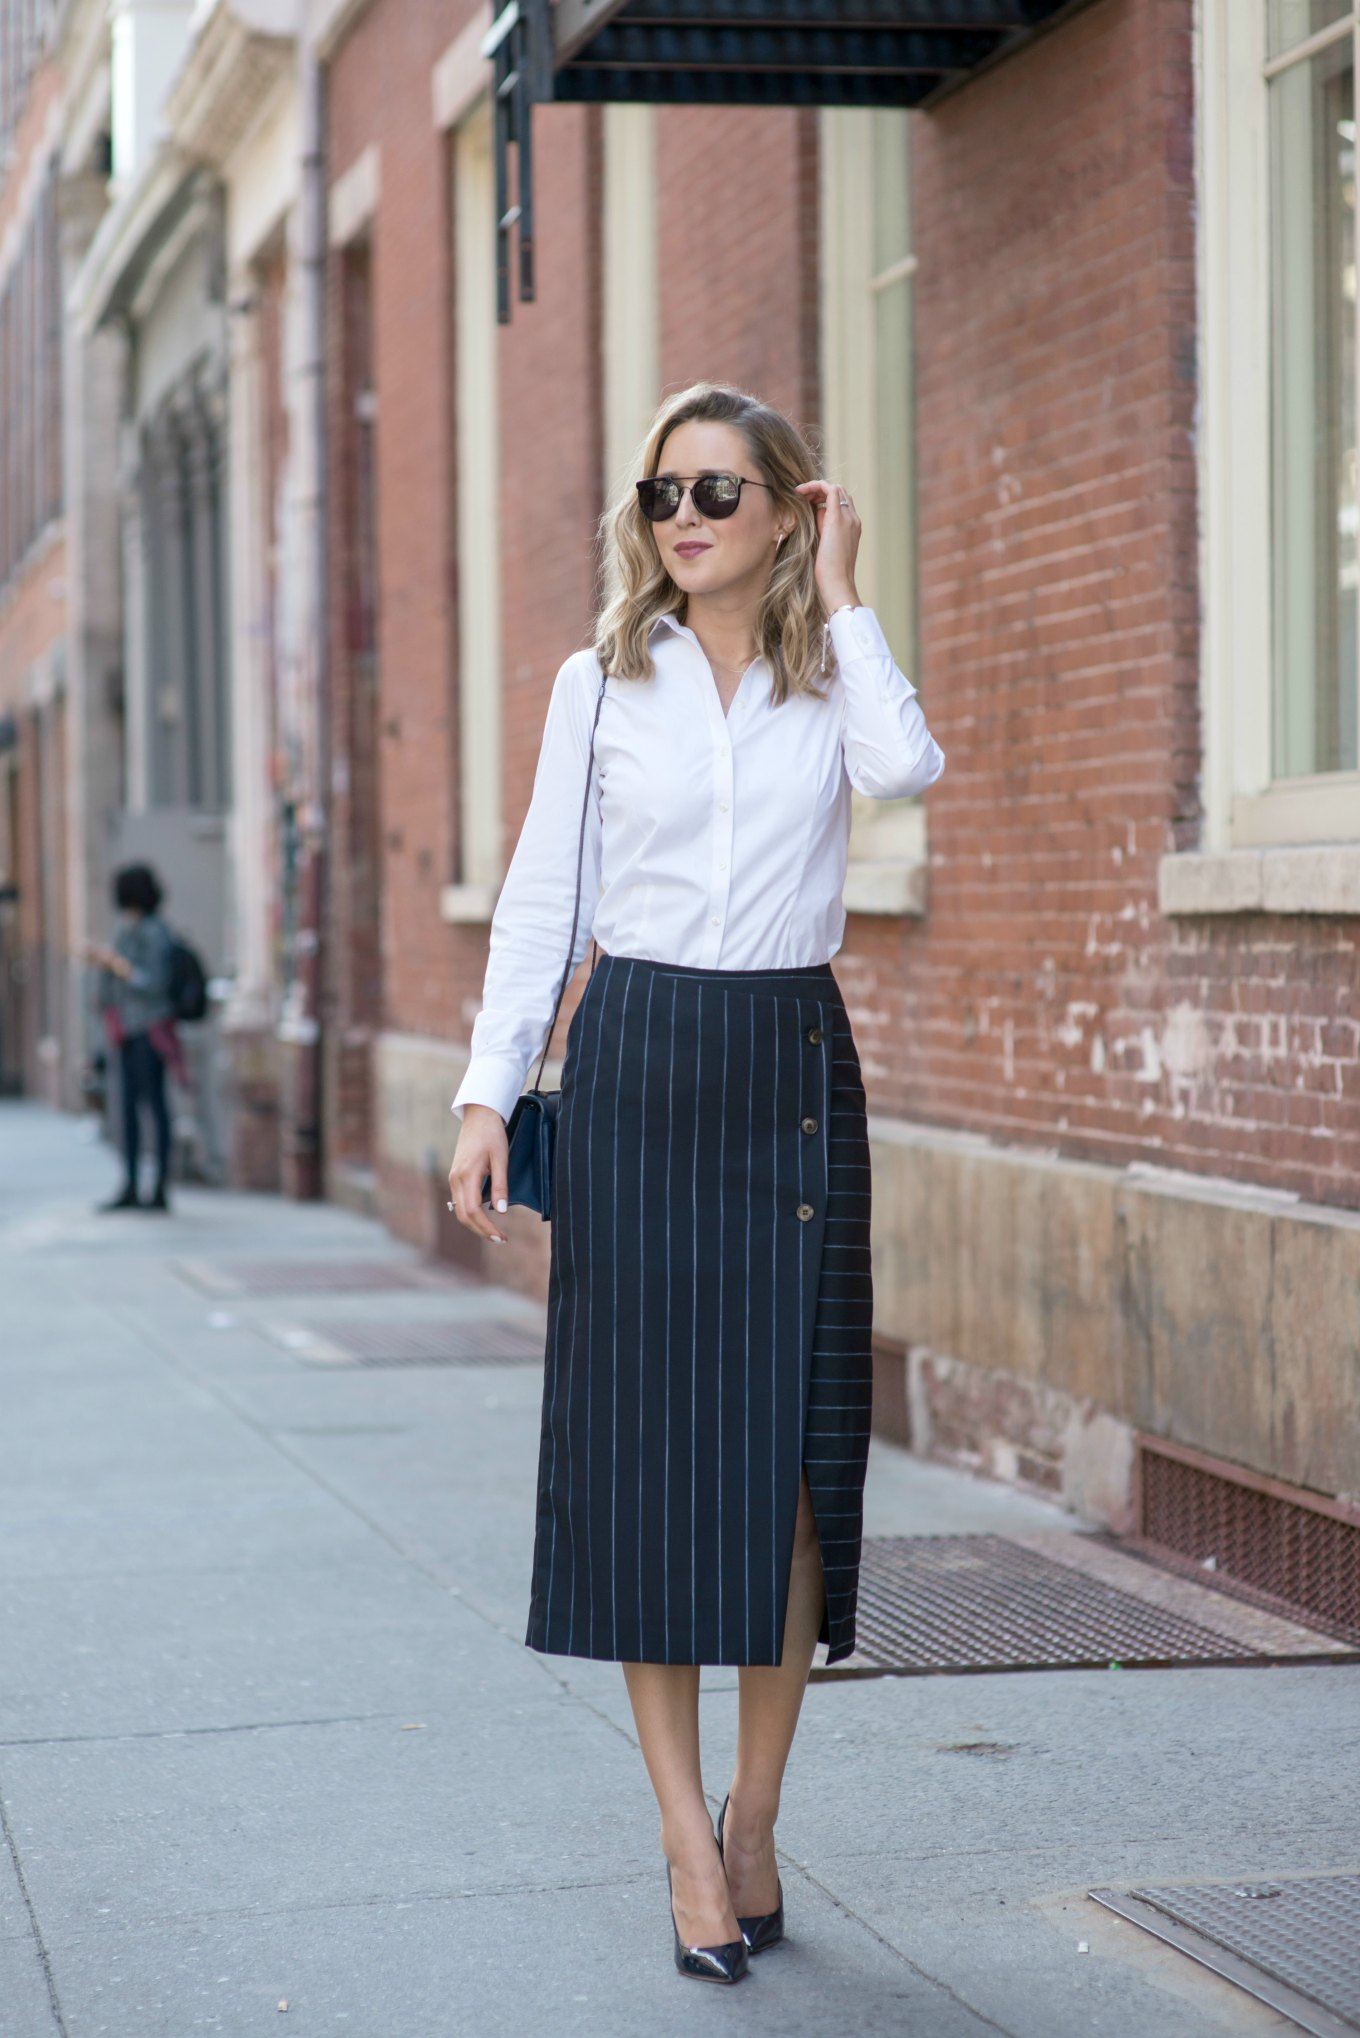 navy-pinstripe-midi-pencil-skirt-collared-button-down-shirt-jimmy-choo-classic-pumps-work-office-wear-style-fashion-blog11-680x1019@2x